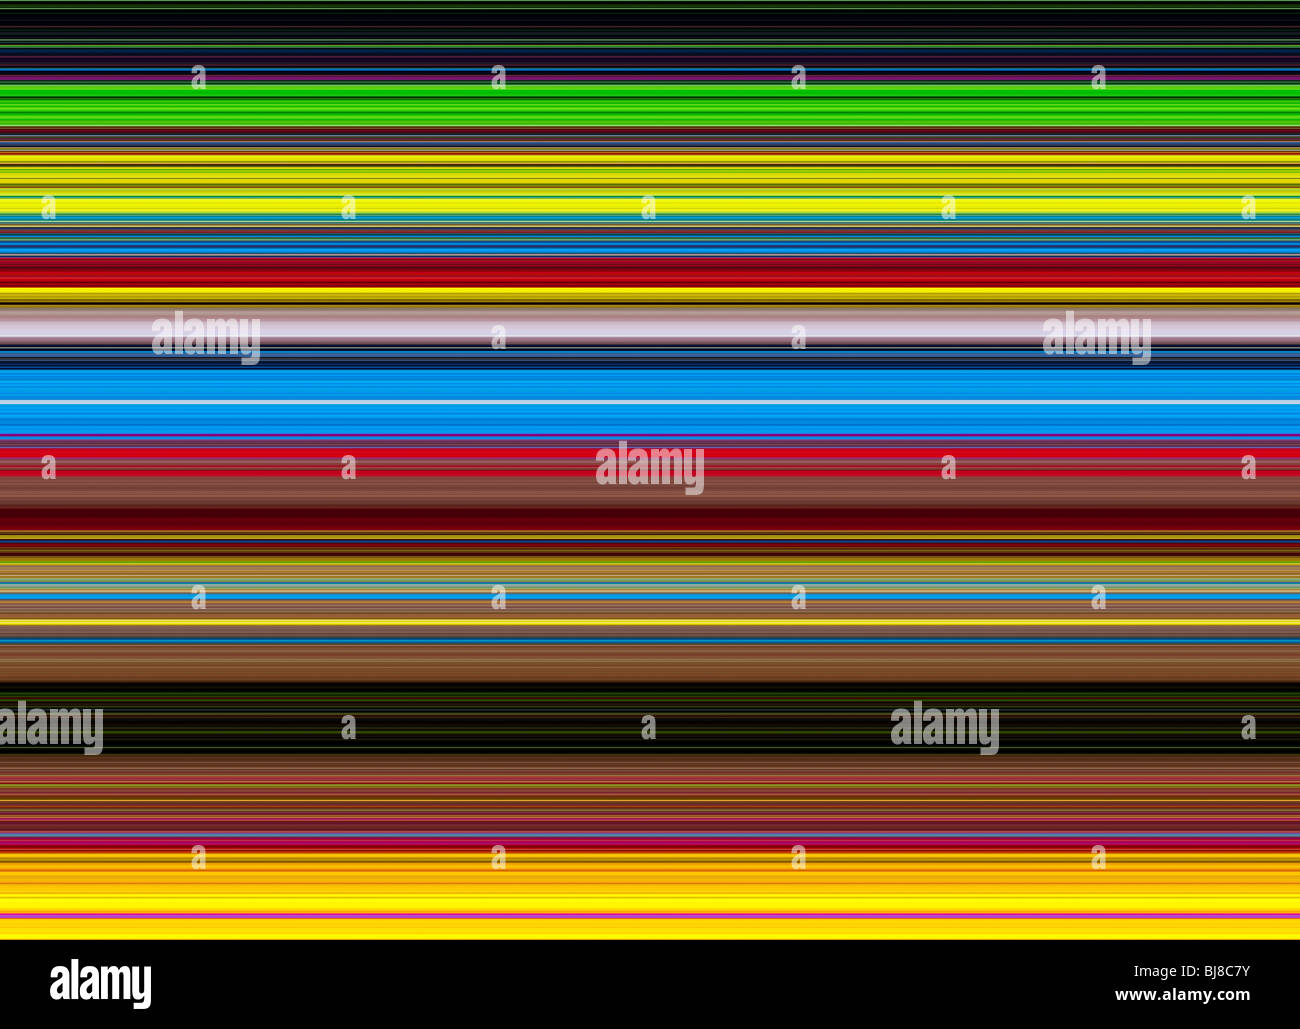 Multicolore linee striped pattern. Illustrazione digitale realizzata da una fotografia Foto Stock